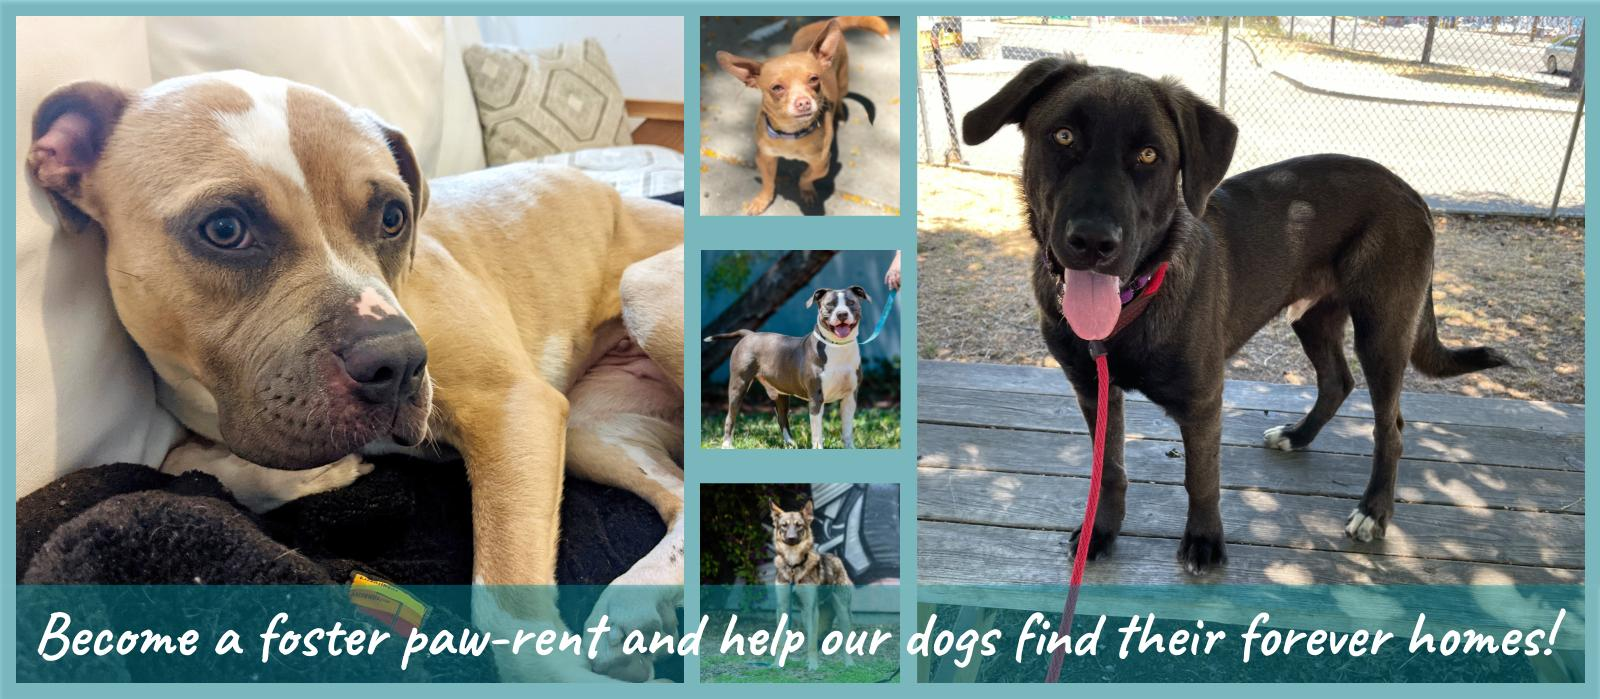 Dog fosters needed! Check out all our dogs needing foster homes!